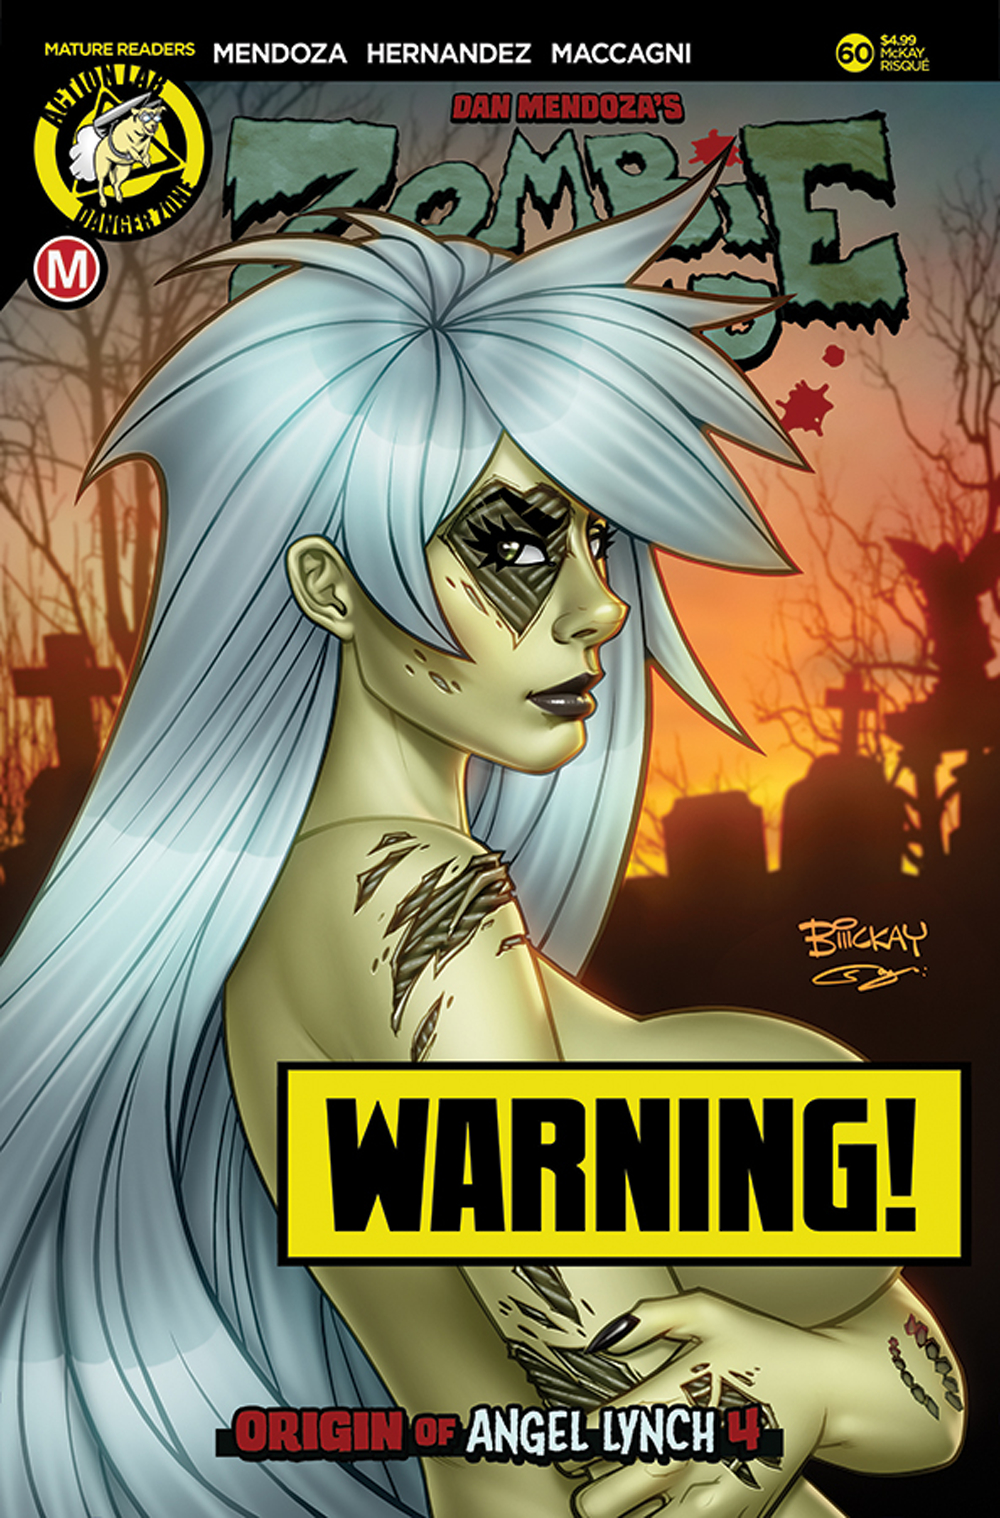 ZOMBIE TRAMP ONGOING #60 CVR D MCKAY RISQUE LTD ED (MR)